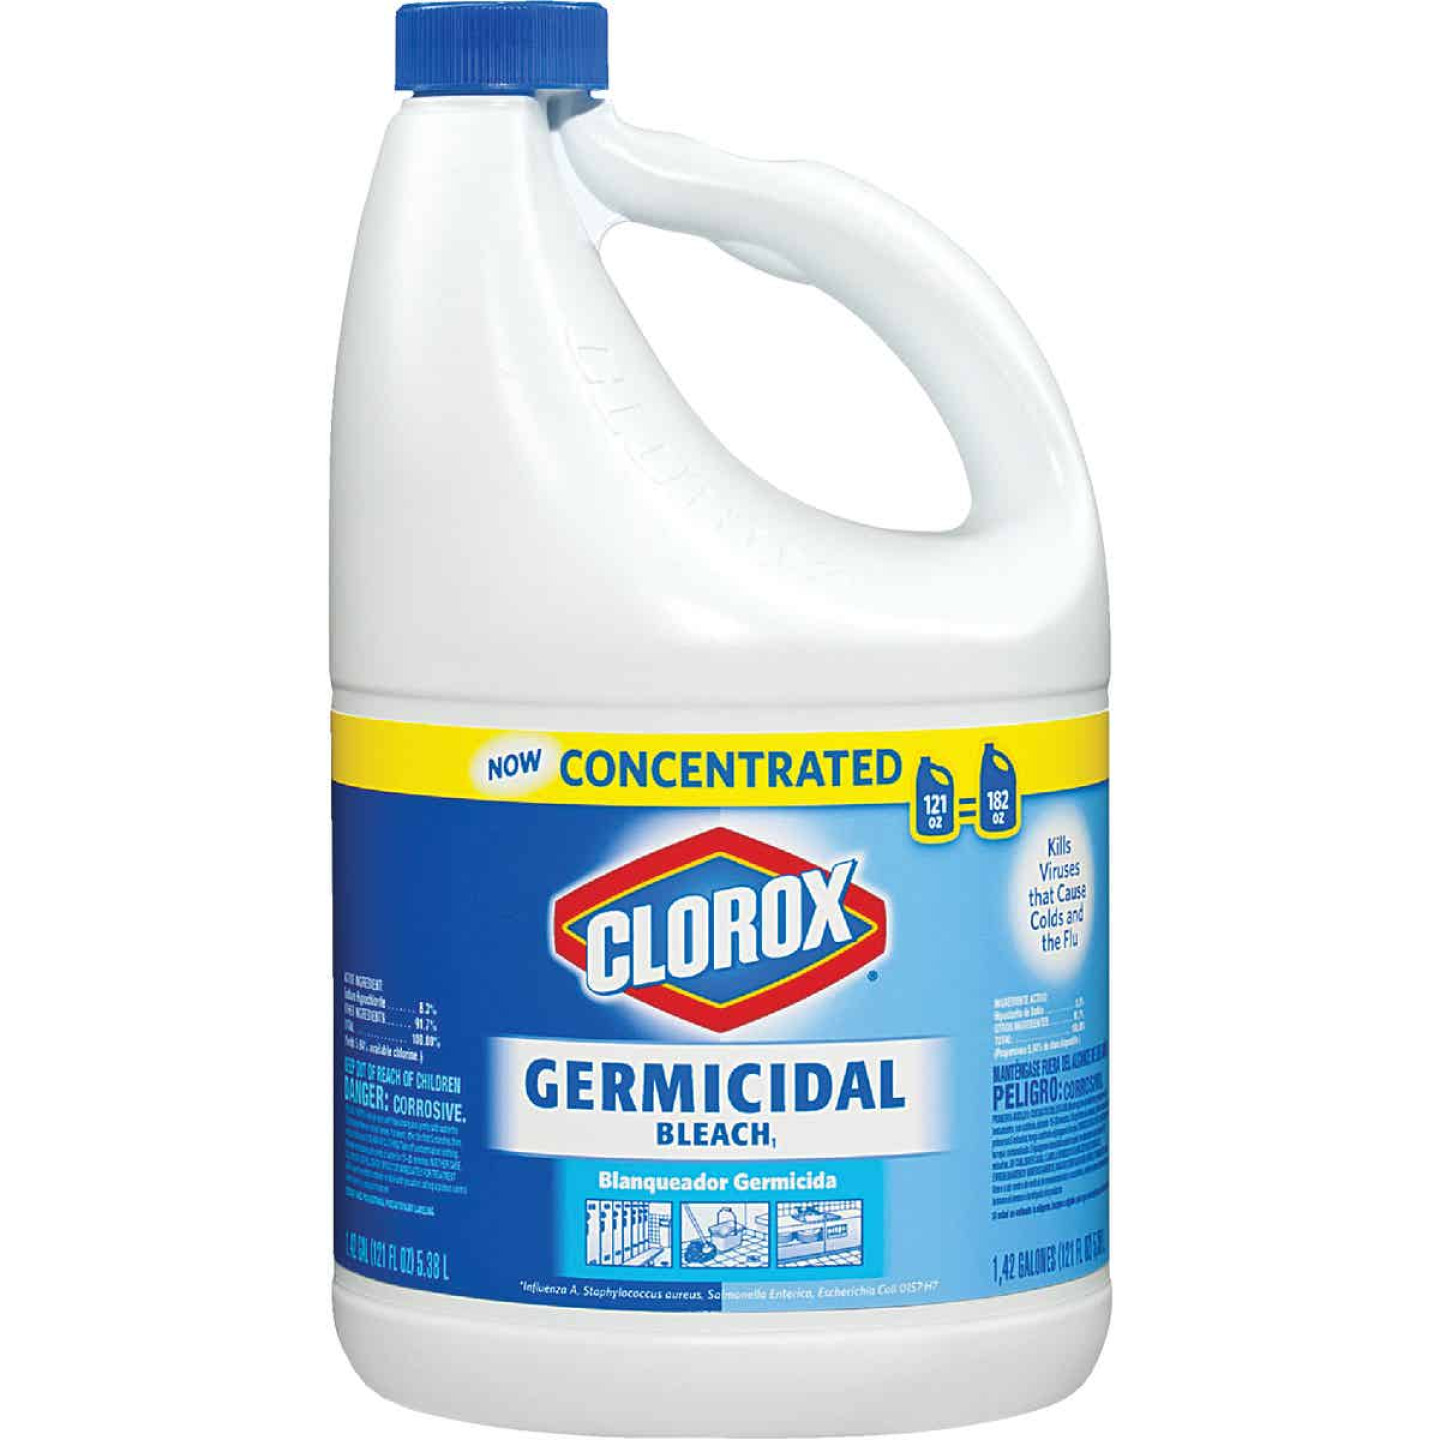 Clorox 121 Oz. Concentrated Germicidal Bleach Image 1